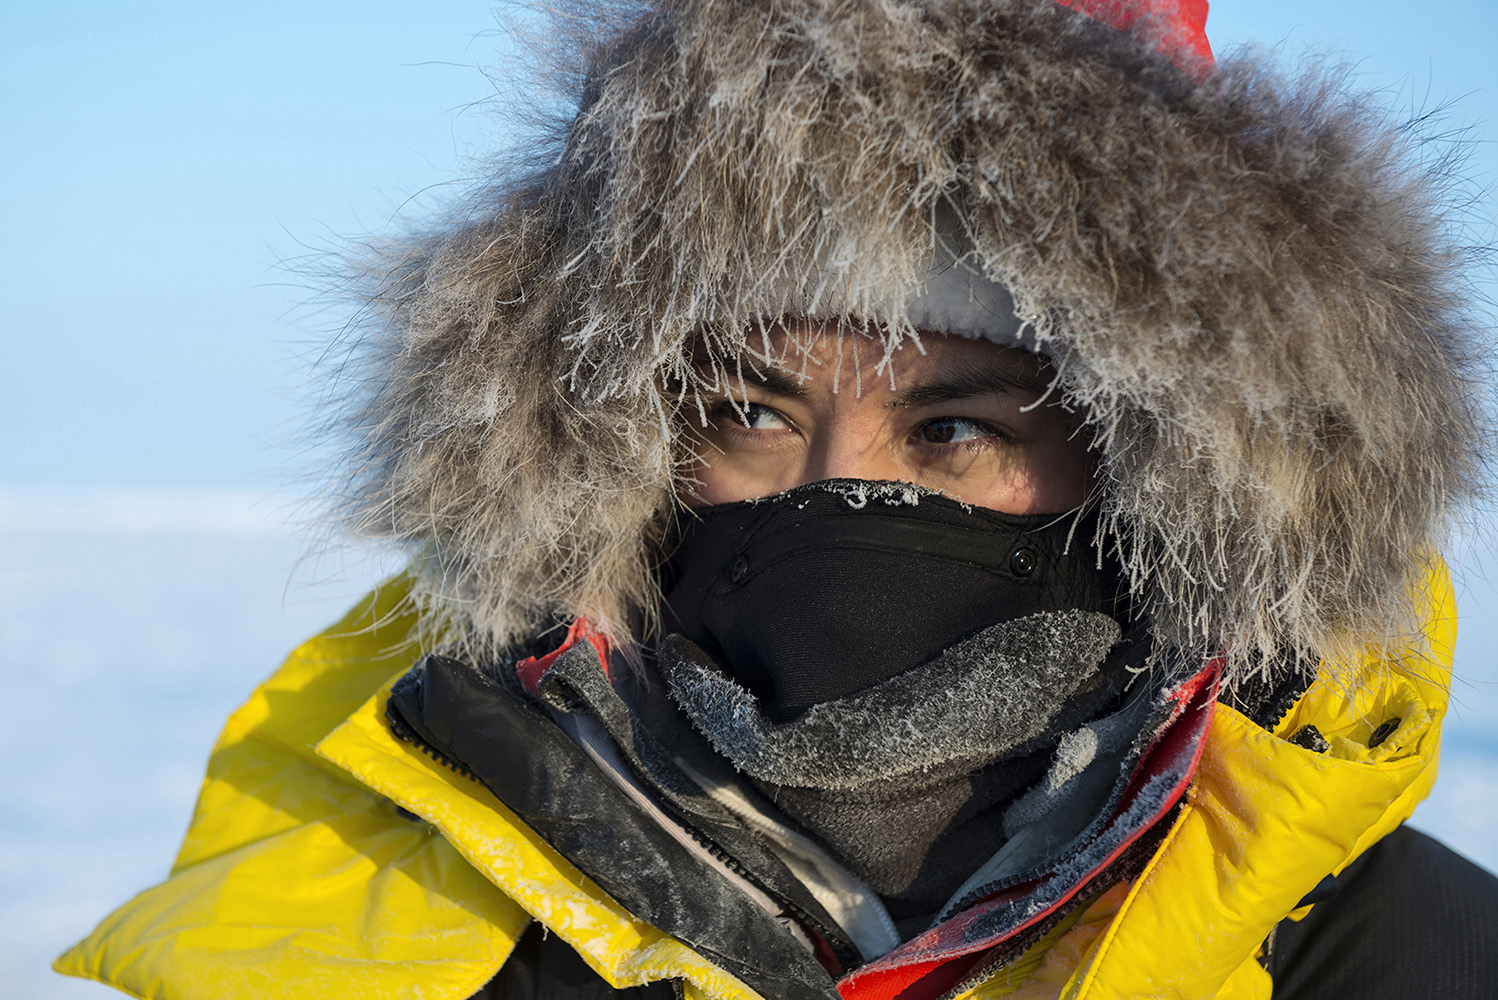 Kiera Kolson from Canada, an Arctic ambassador with the North Pole expedition team, during a trek to the North Pole.